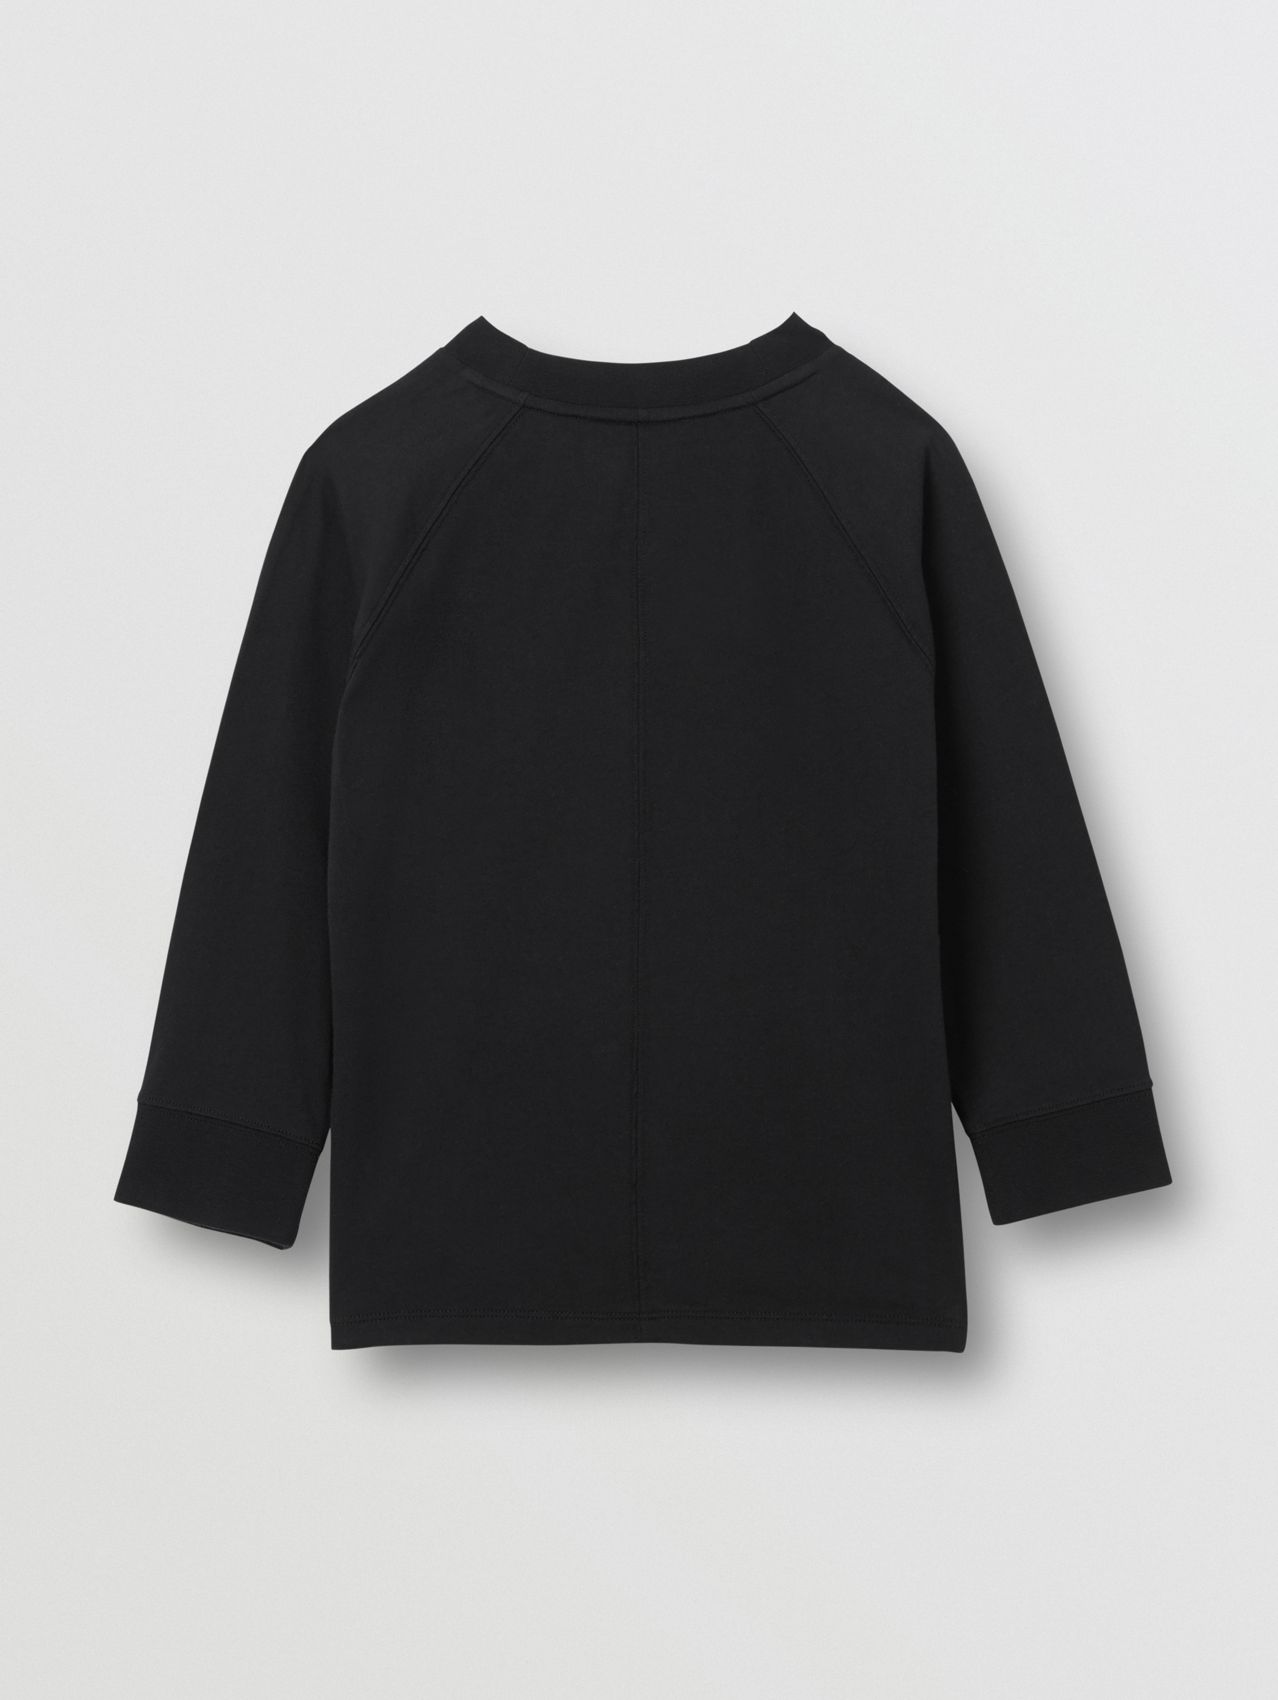 Long-sleeve Horseferry Print Cotton Top in Black